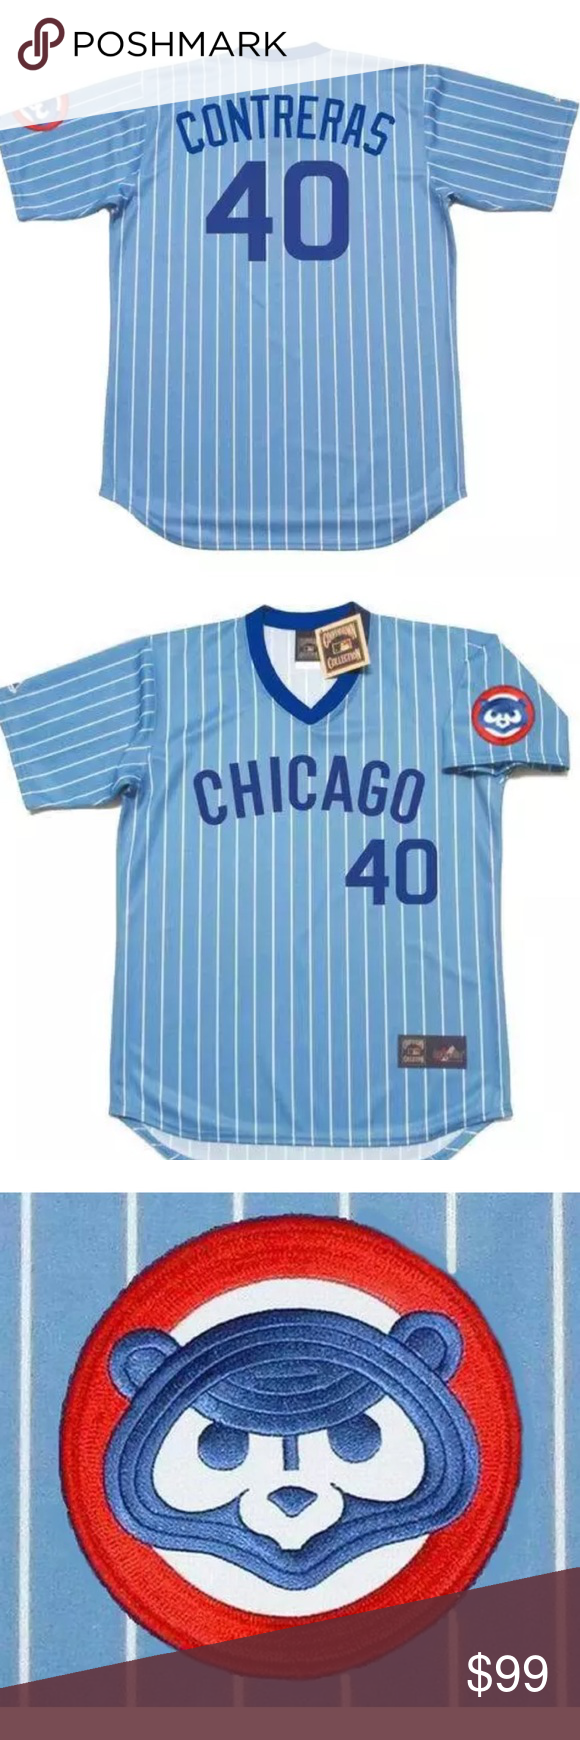 f60110da0b4  COMING AOON  Willson Contreras Cubs Throwbacks! Coming soon to.  Northsidechamps